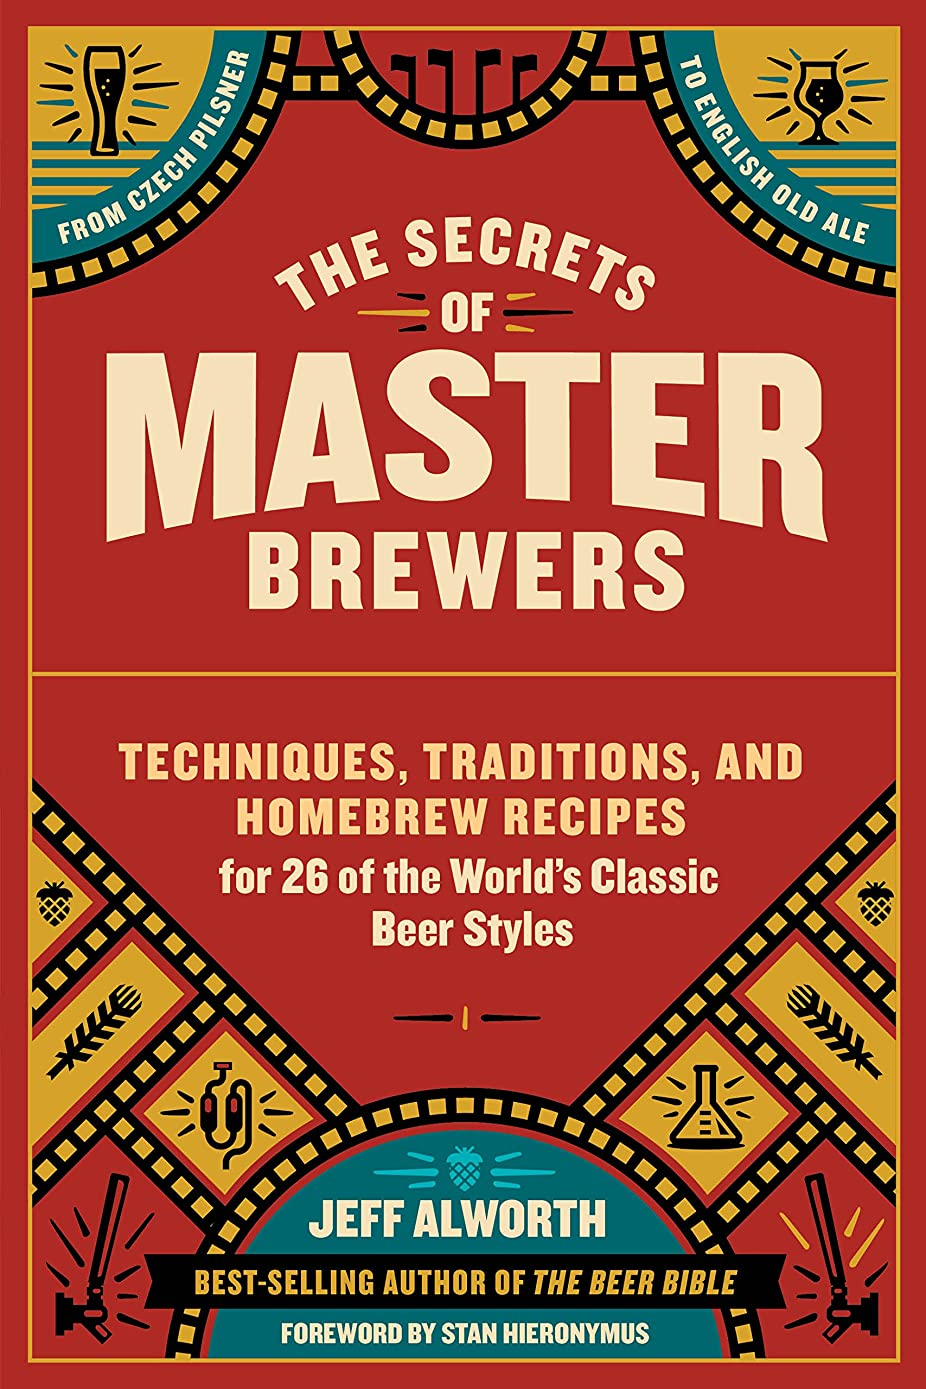 キャラバン探偵祝福するThe Secrets of Master Brewers: Techniques, Traditions, and Homebrew Recipes for 26 of the World's Classic Beer Styles, from Czech Pilsner to English Old Ale (English Edition)